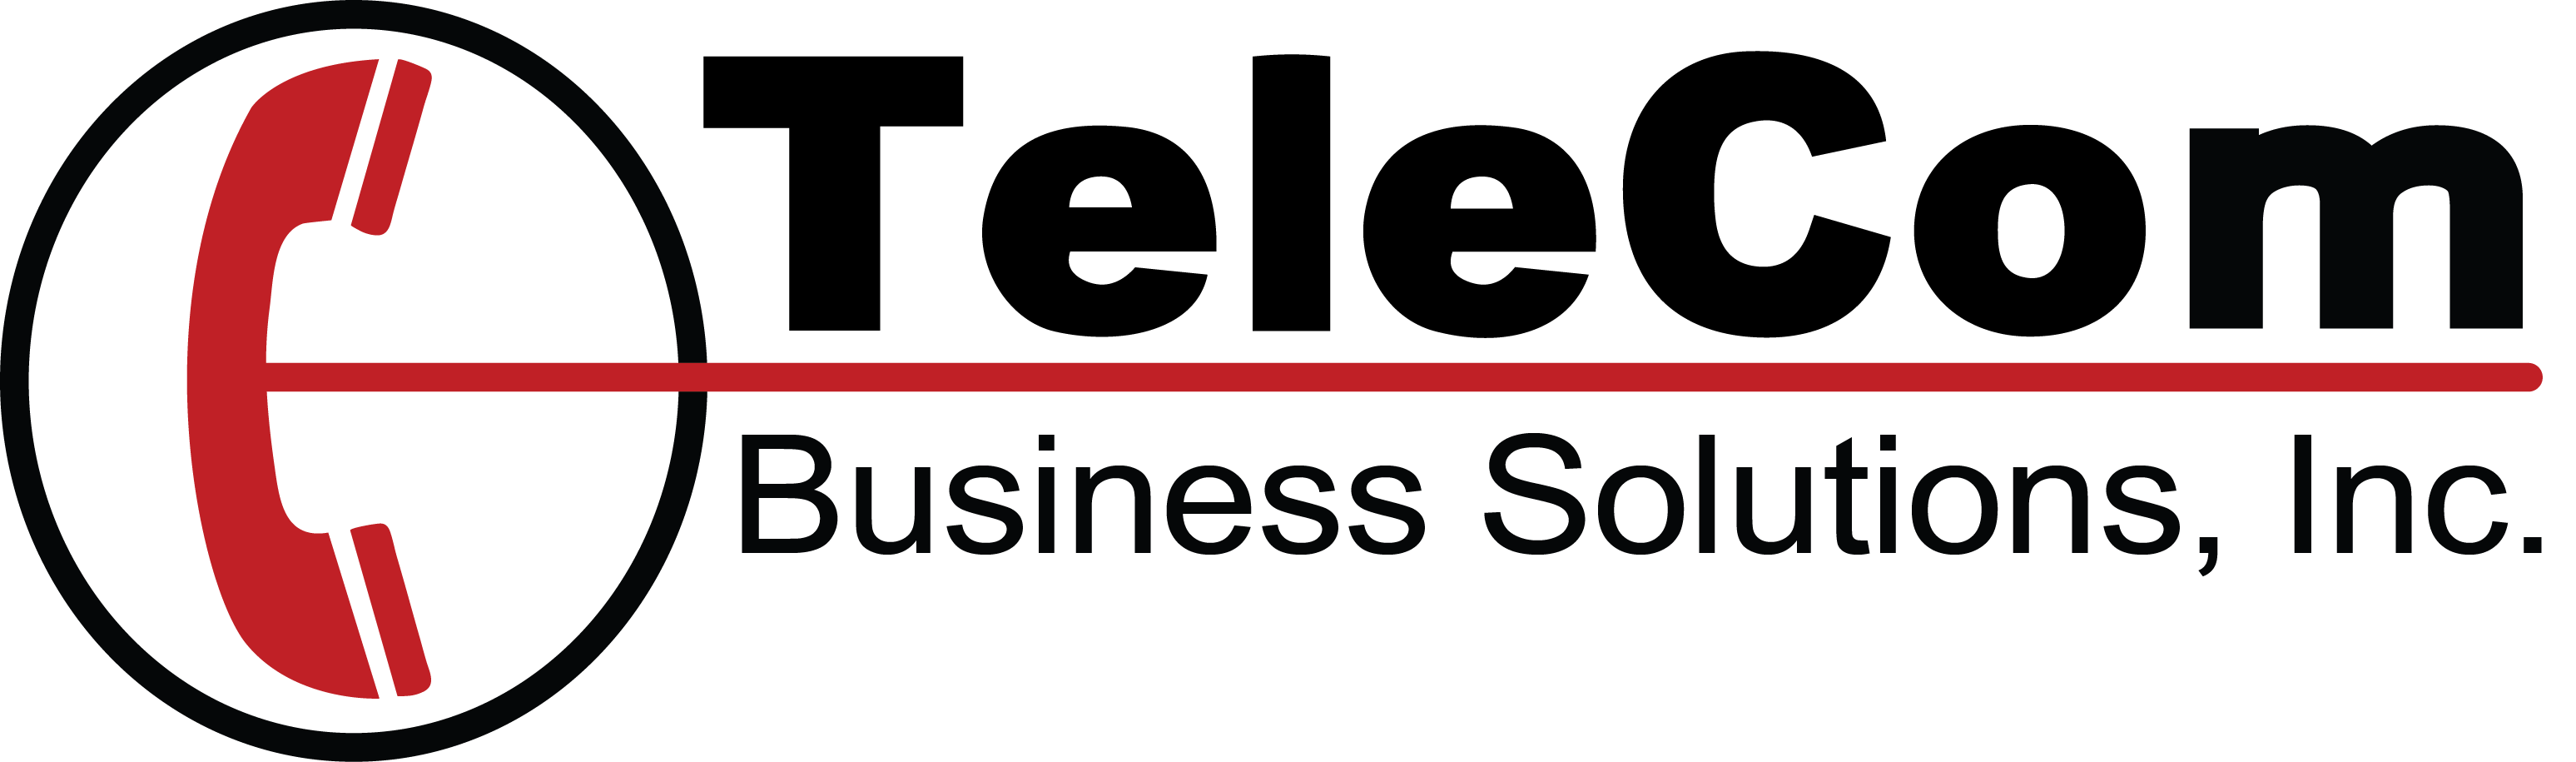 Telecom Business Solutions